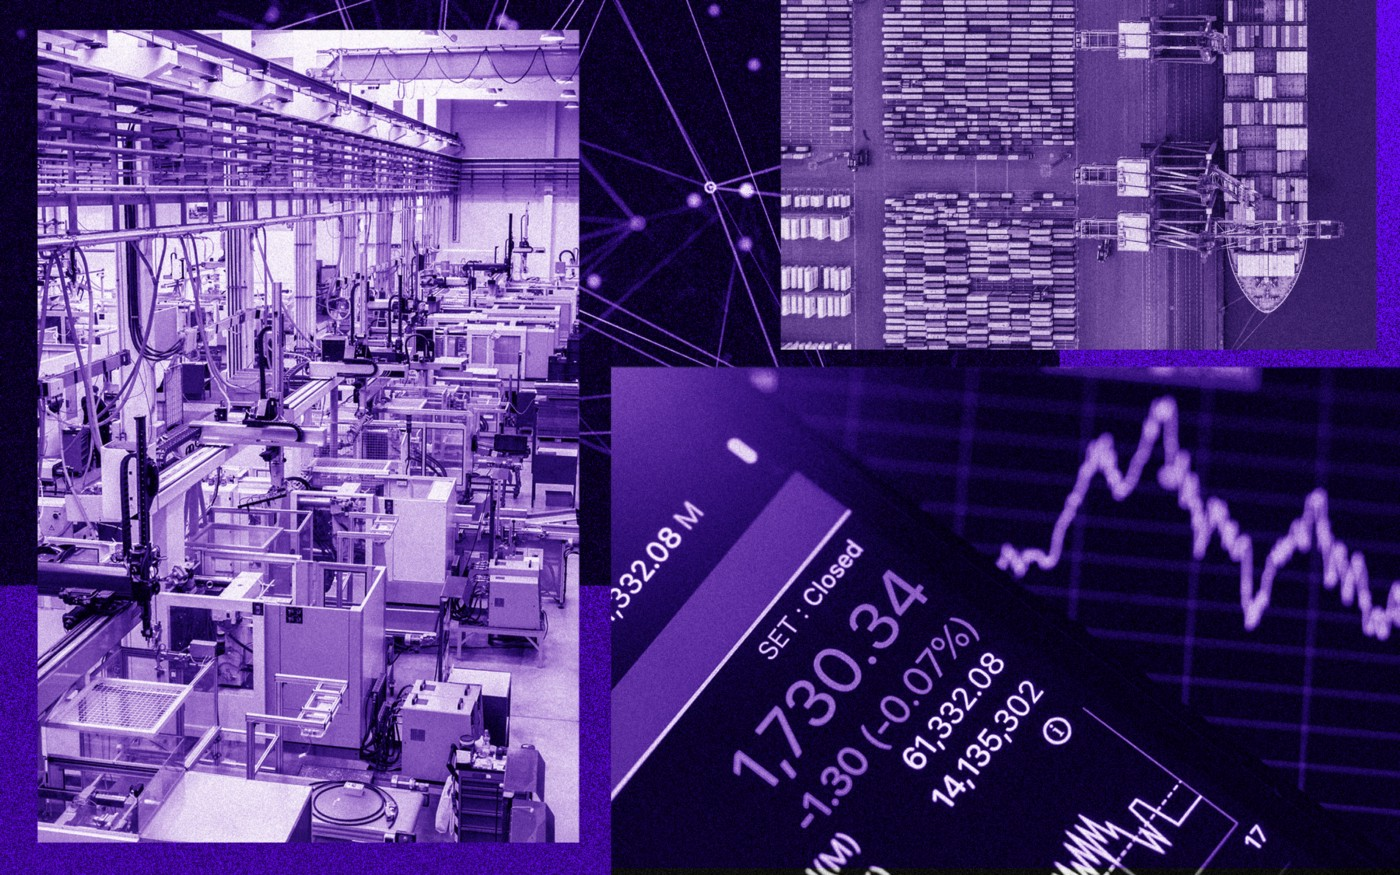 A photo collage of a shipping dock, a graph of a stock market activity, and an automated warehouse